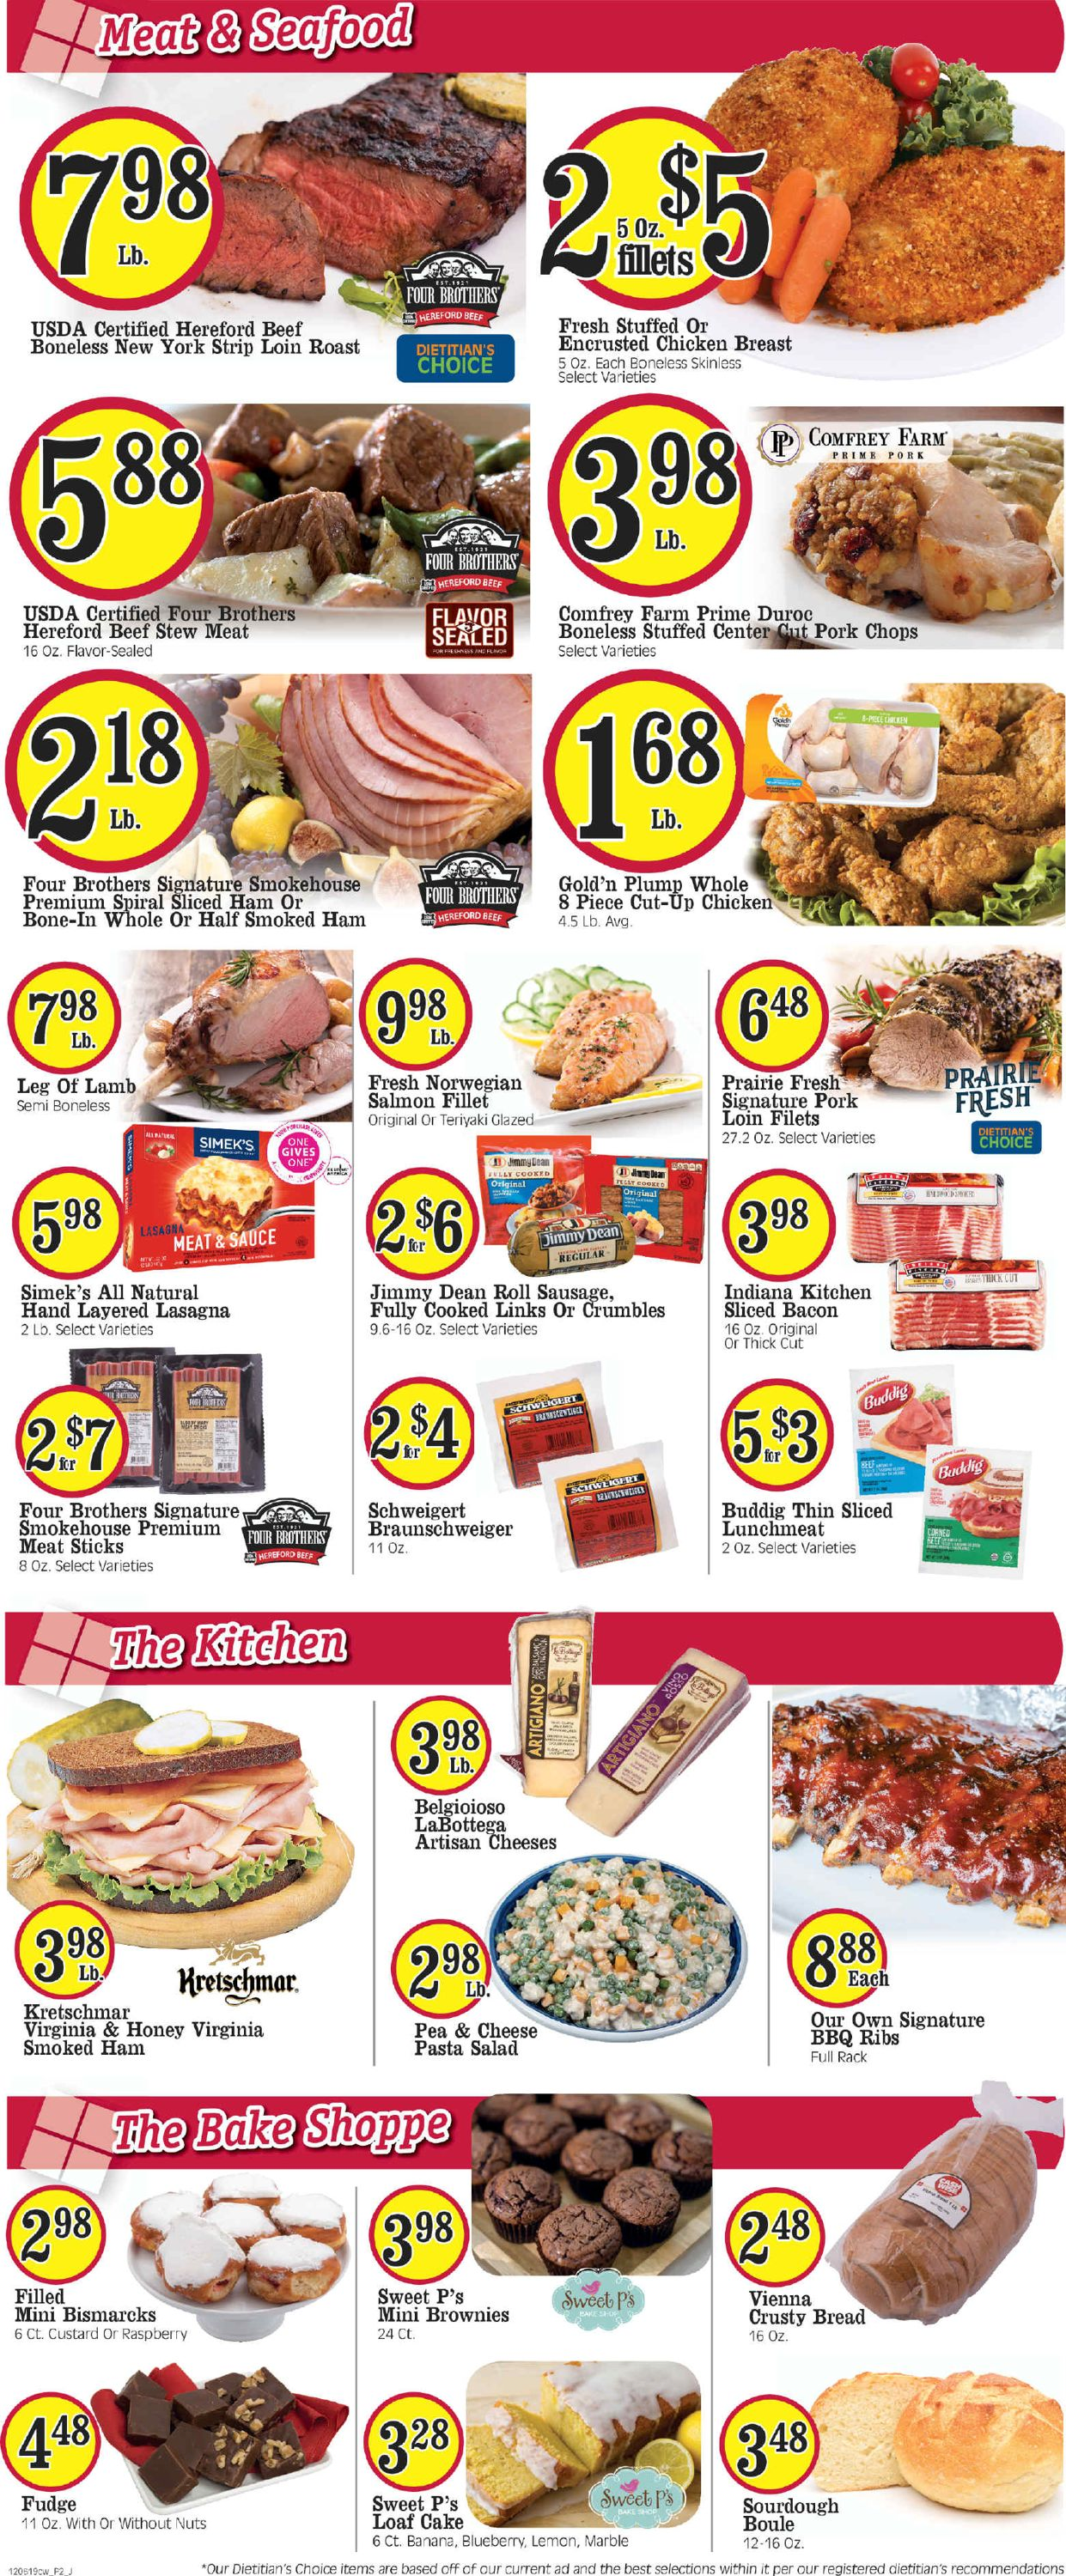 Catalogue Cash Wise - Holidays Ad 2019 from 12/08/2019